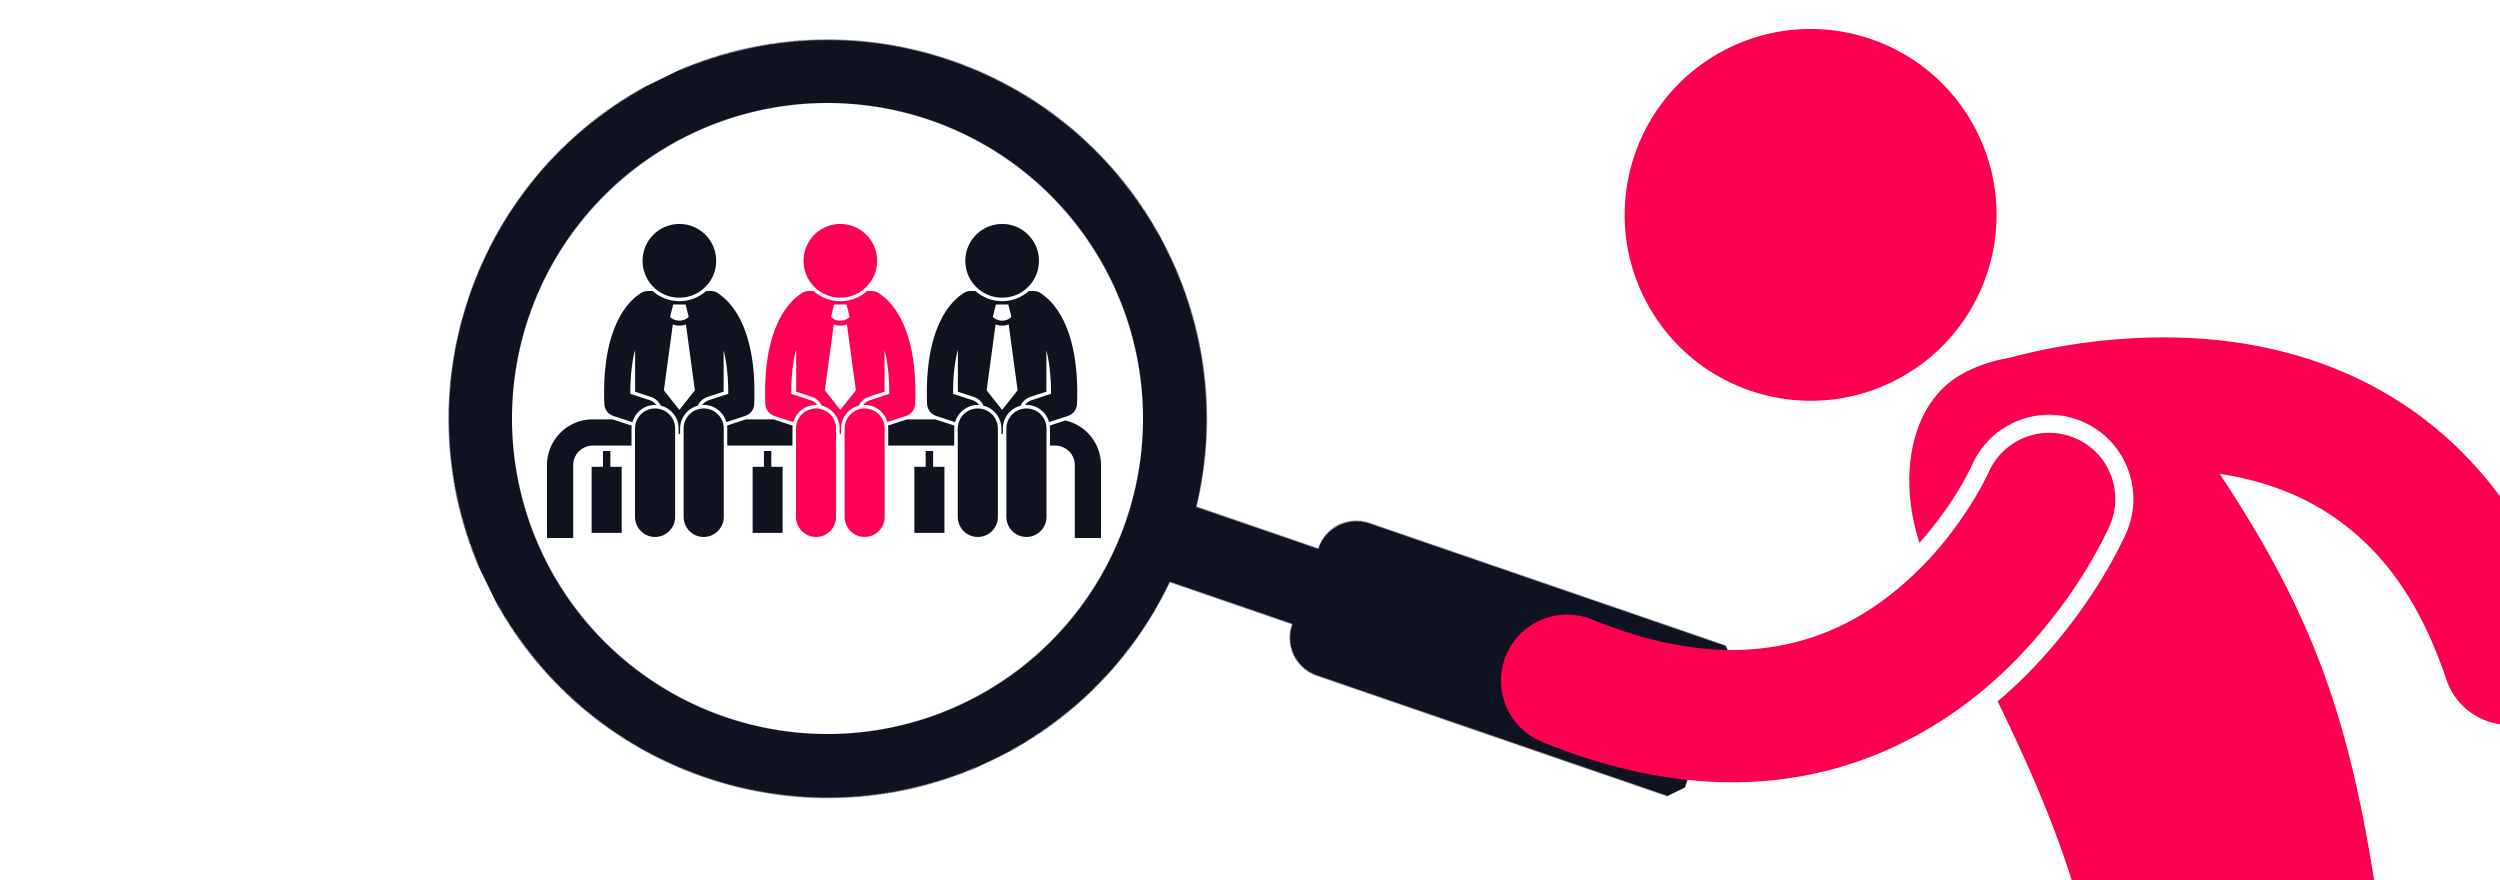 4 Recruiting Strategies to Find Top Marketing Talent for Small Agencies